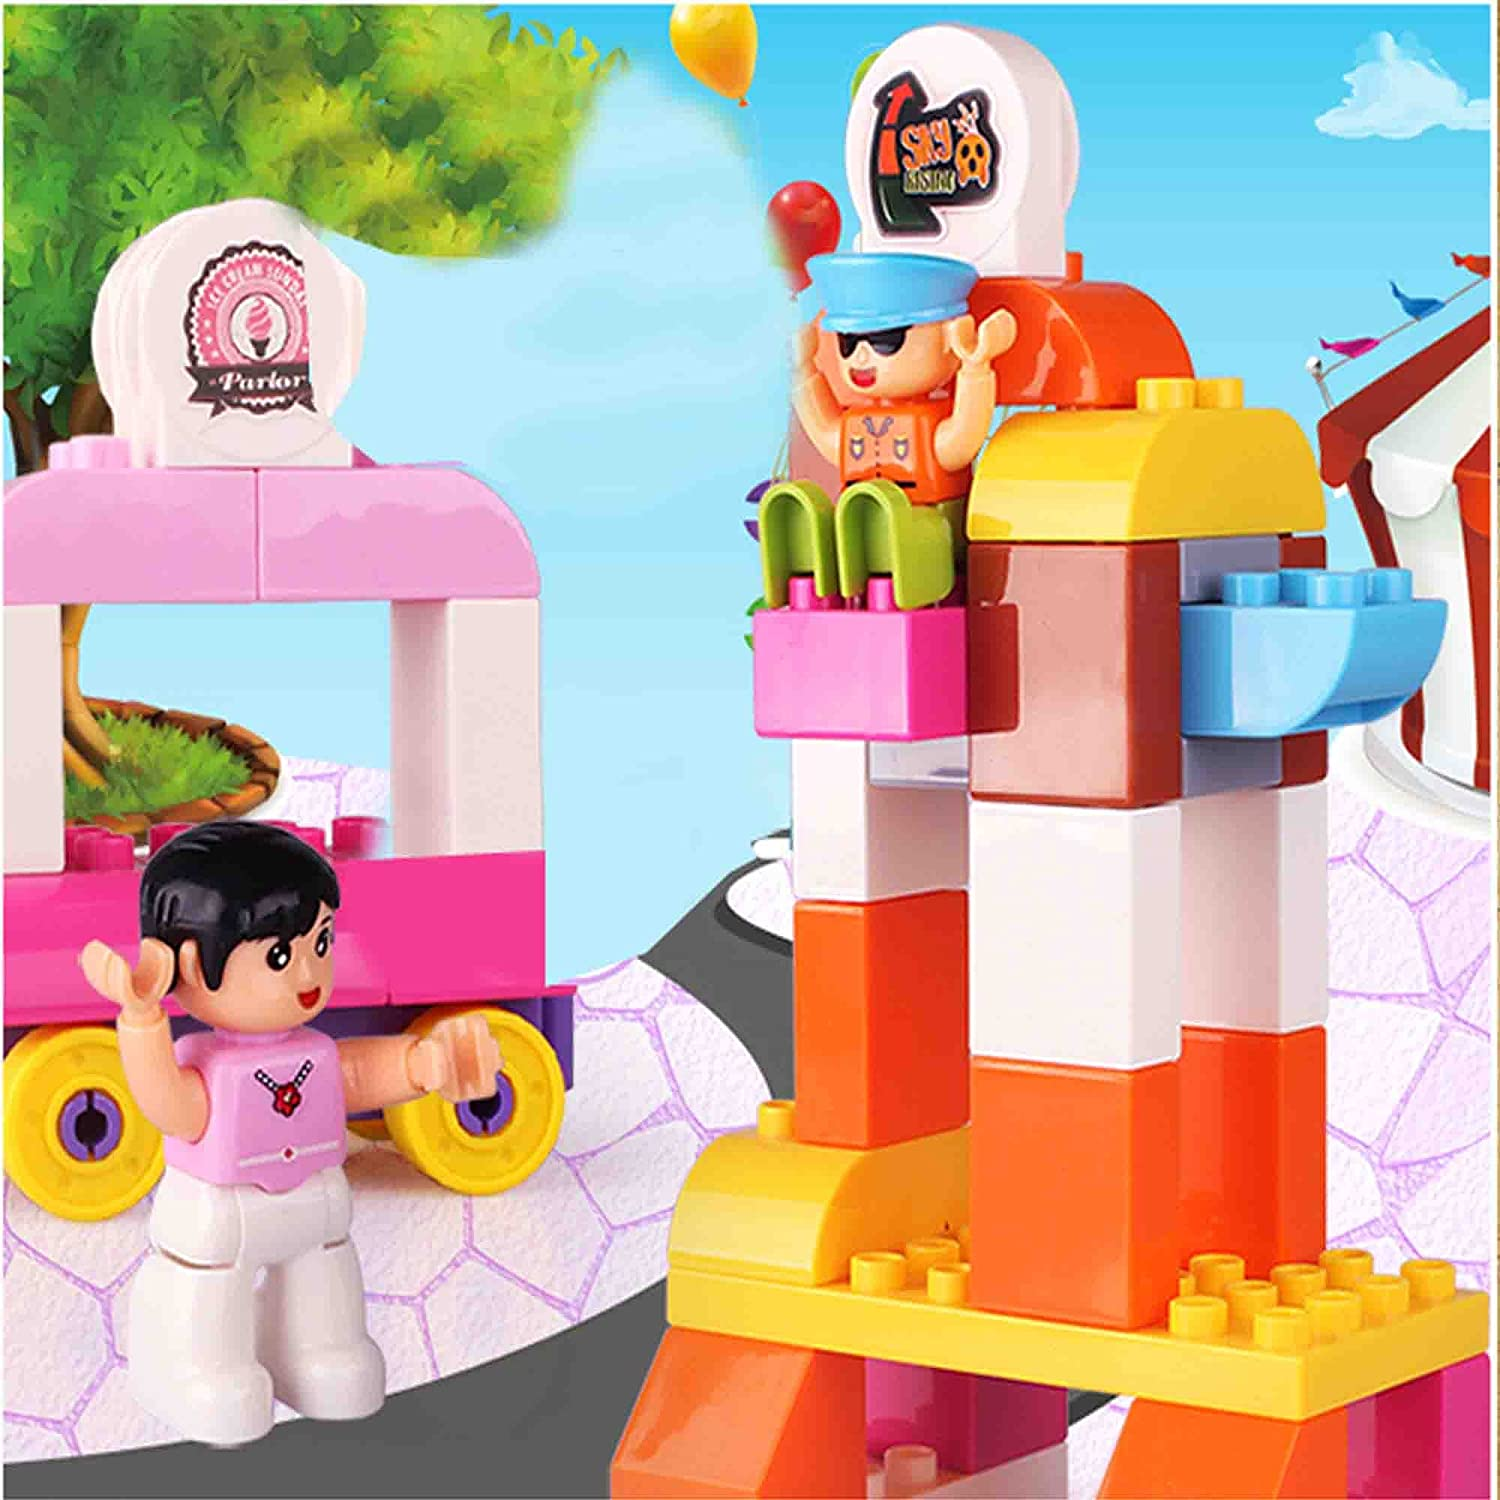 ~ 41 Colorful Pieces Fun and Creative Ele Toys Joey Gets Lost ~ Interlocking Building Bricks Story Blocks ~ Compatible with Major Brands ~ Educational